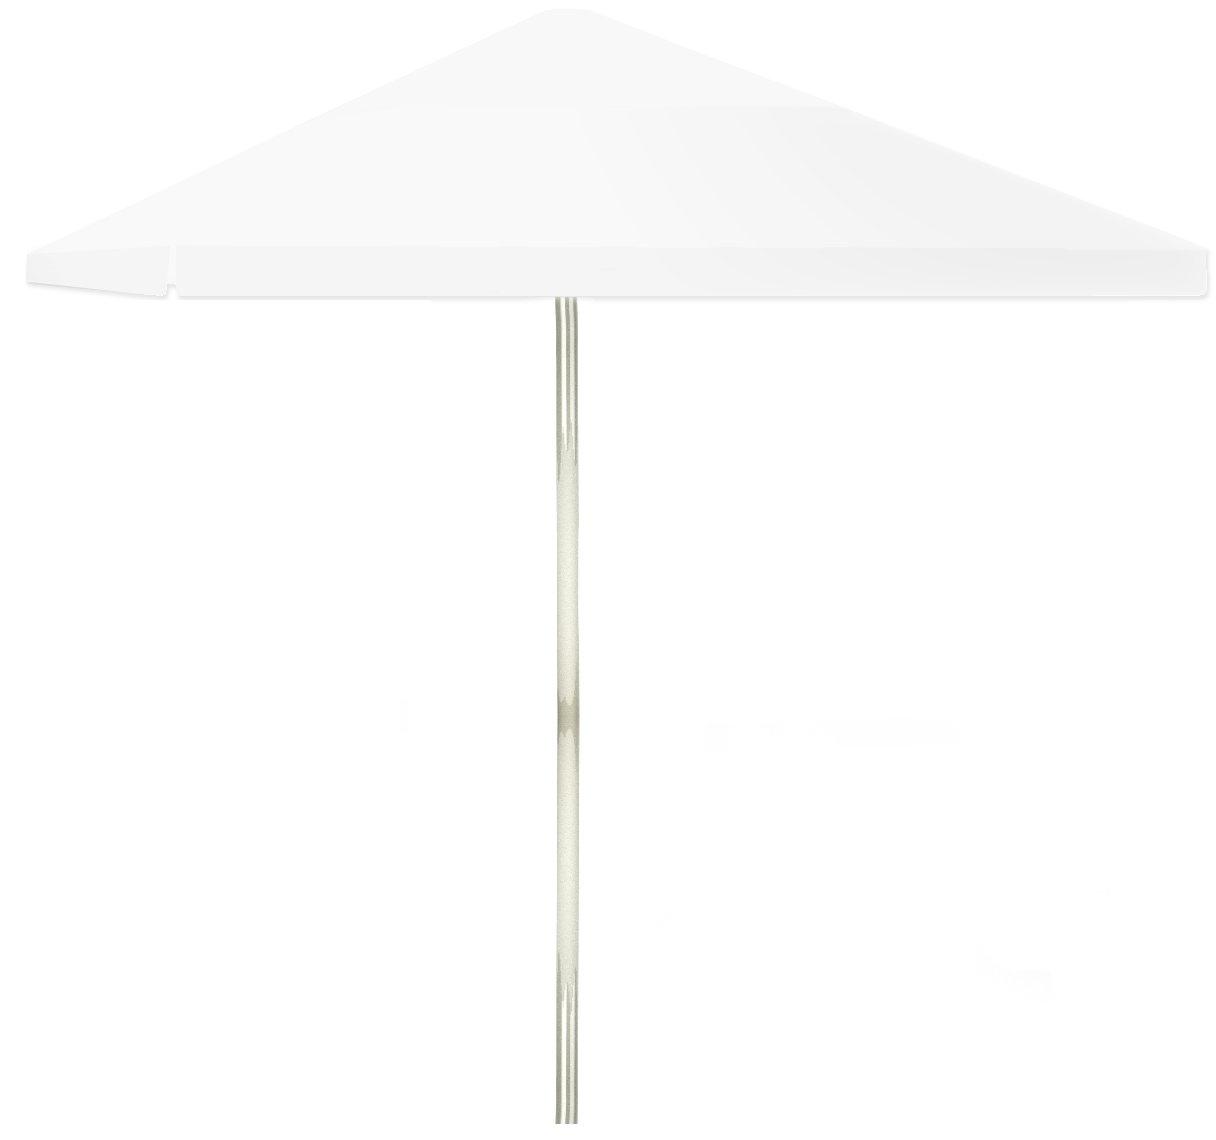 Widely Used Bradford Patio Market Umbrellas Intended For Billingham 6' Square Market Umbrella (View 20 of 20)